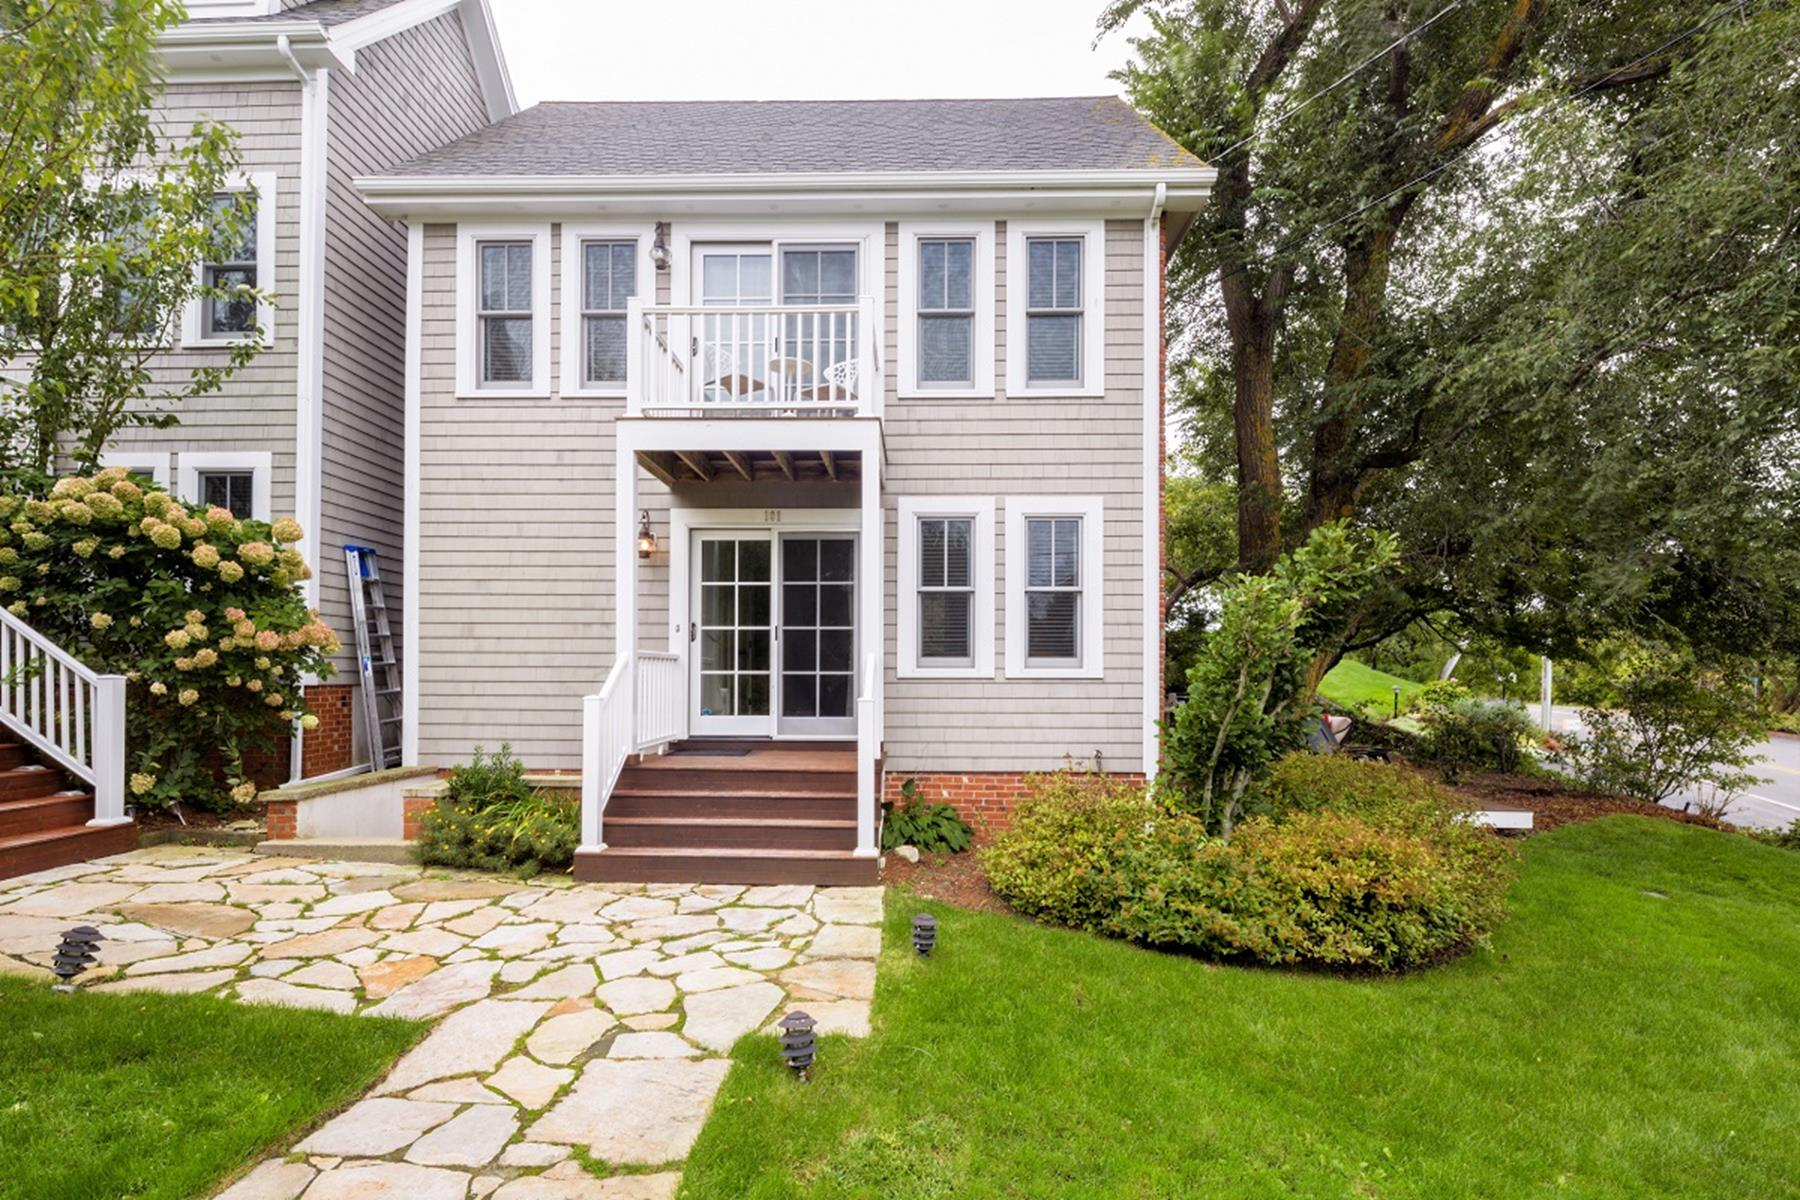 Condominium for Sale at The Dunes 125 Bradford Street Ext., Unit 101 Provincetown, Massachusetts, 02657 United States